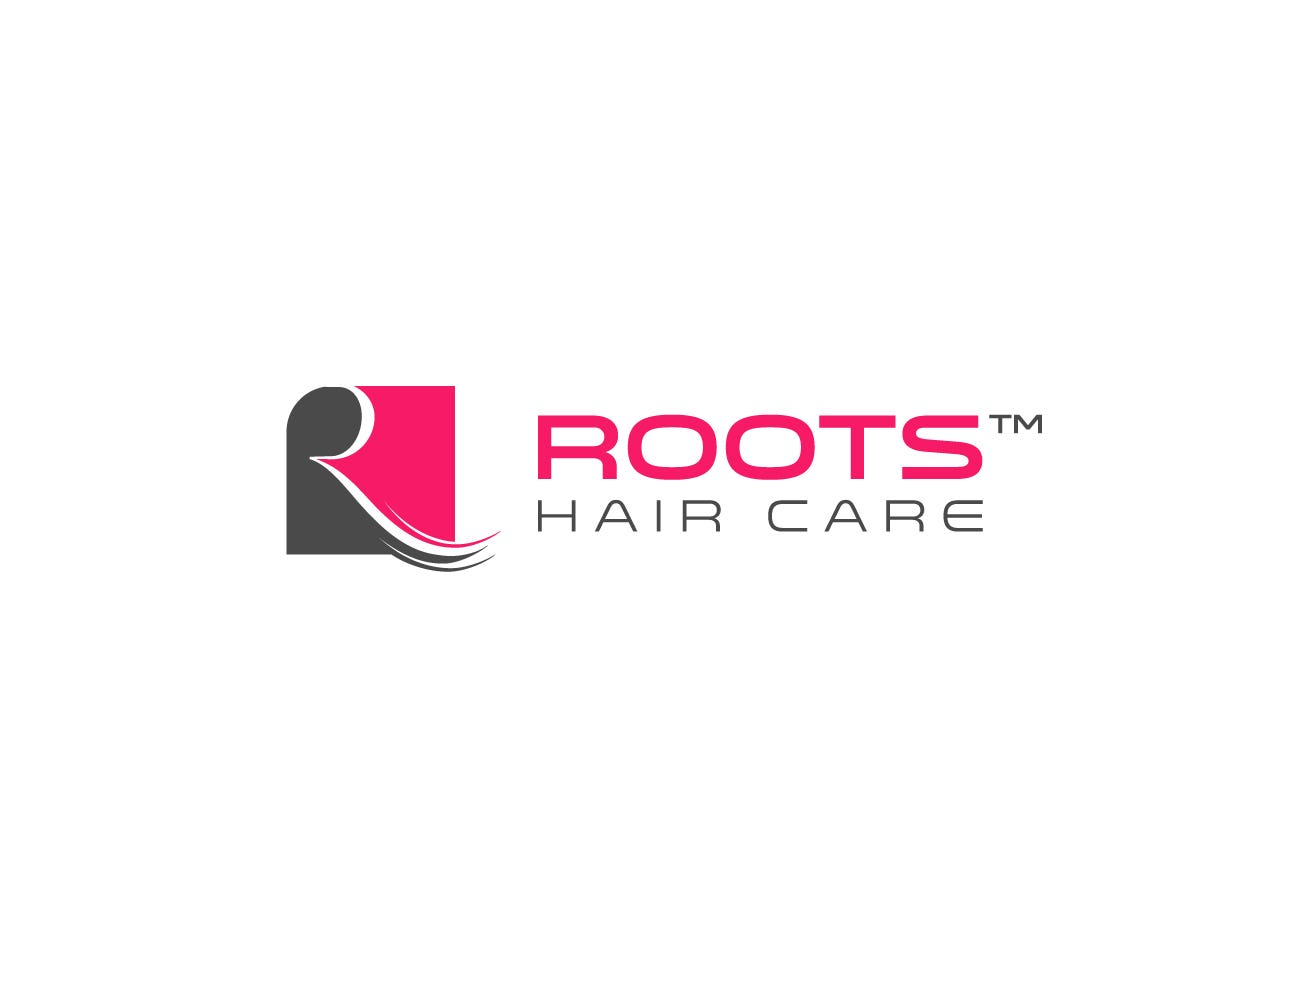 Roots Hair Care